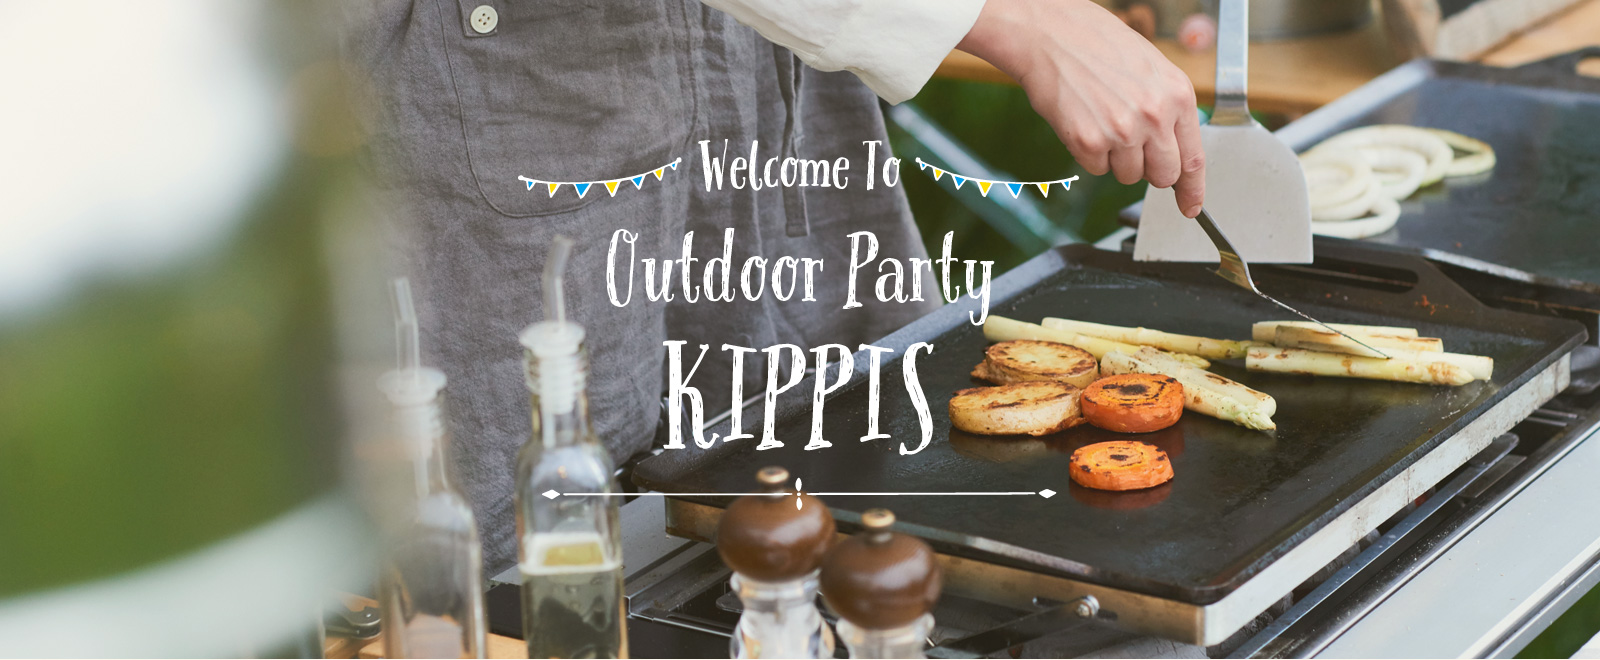 Welcome to OutdoorParty KIPPIS 森のバーベキュー